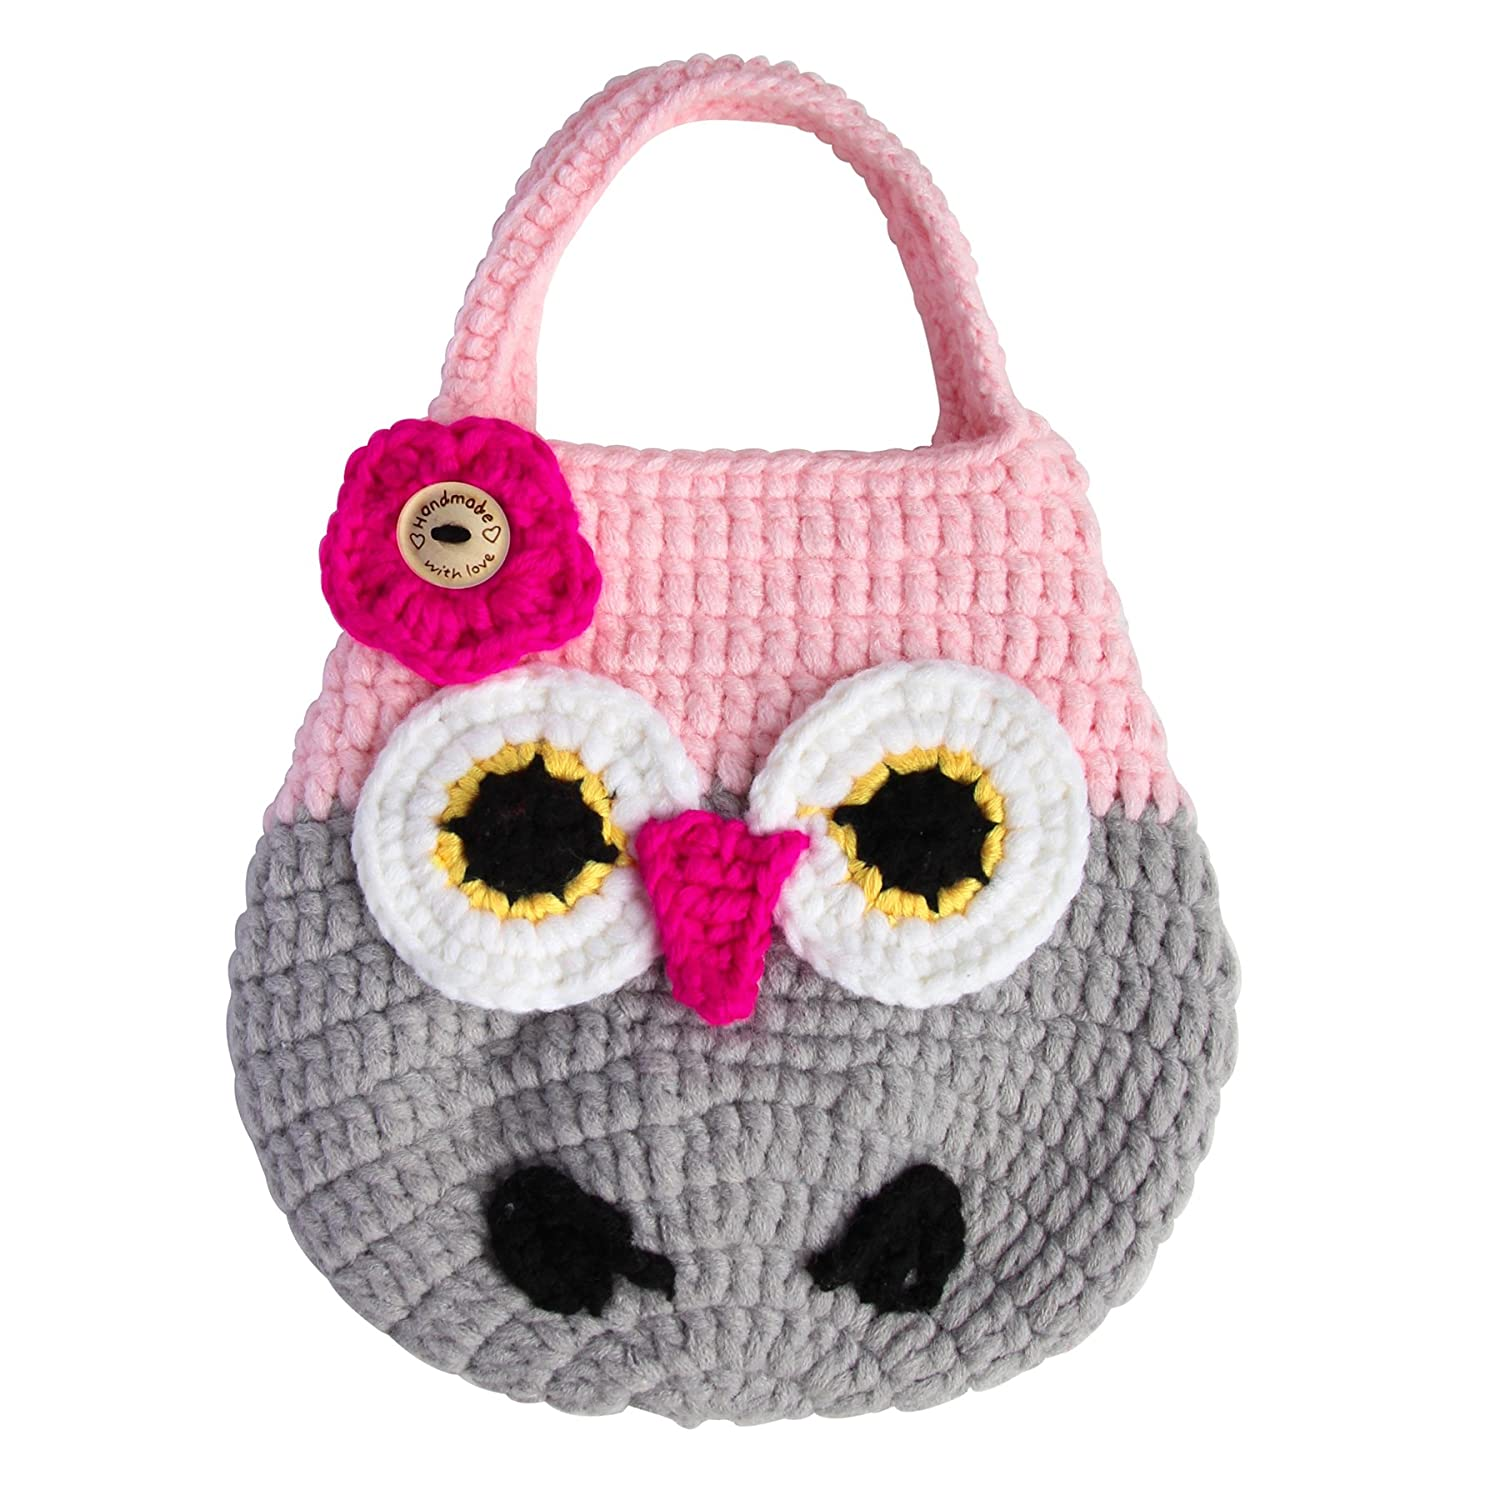 Amazon mini crochet owl purse for little toddler kids girls amazon mini crochet owl purse for little toddler kids girls birthday gift handbag natural cotton yarn handmade with love 81030pink and gray bankloansurffo Image collections